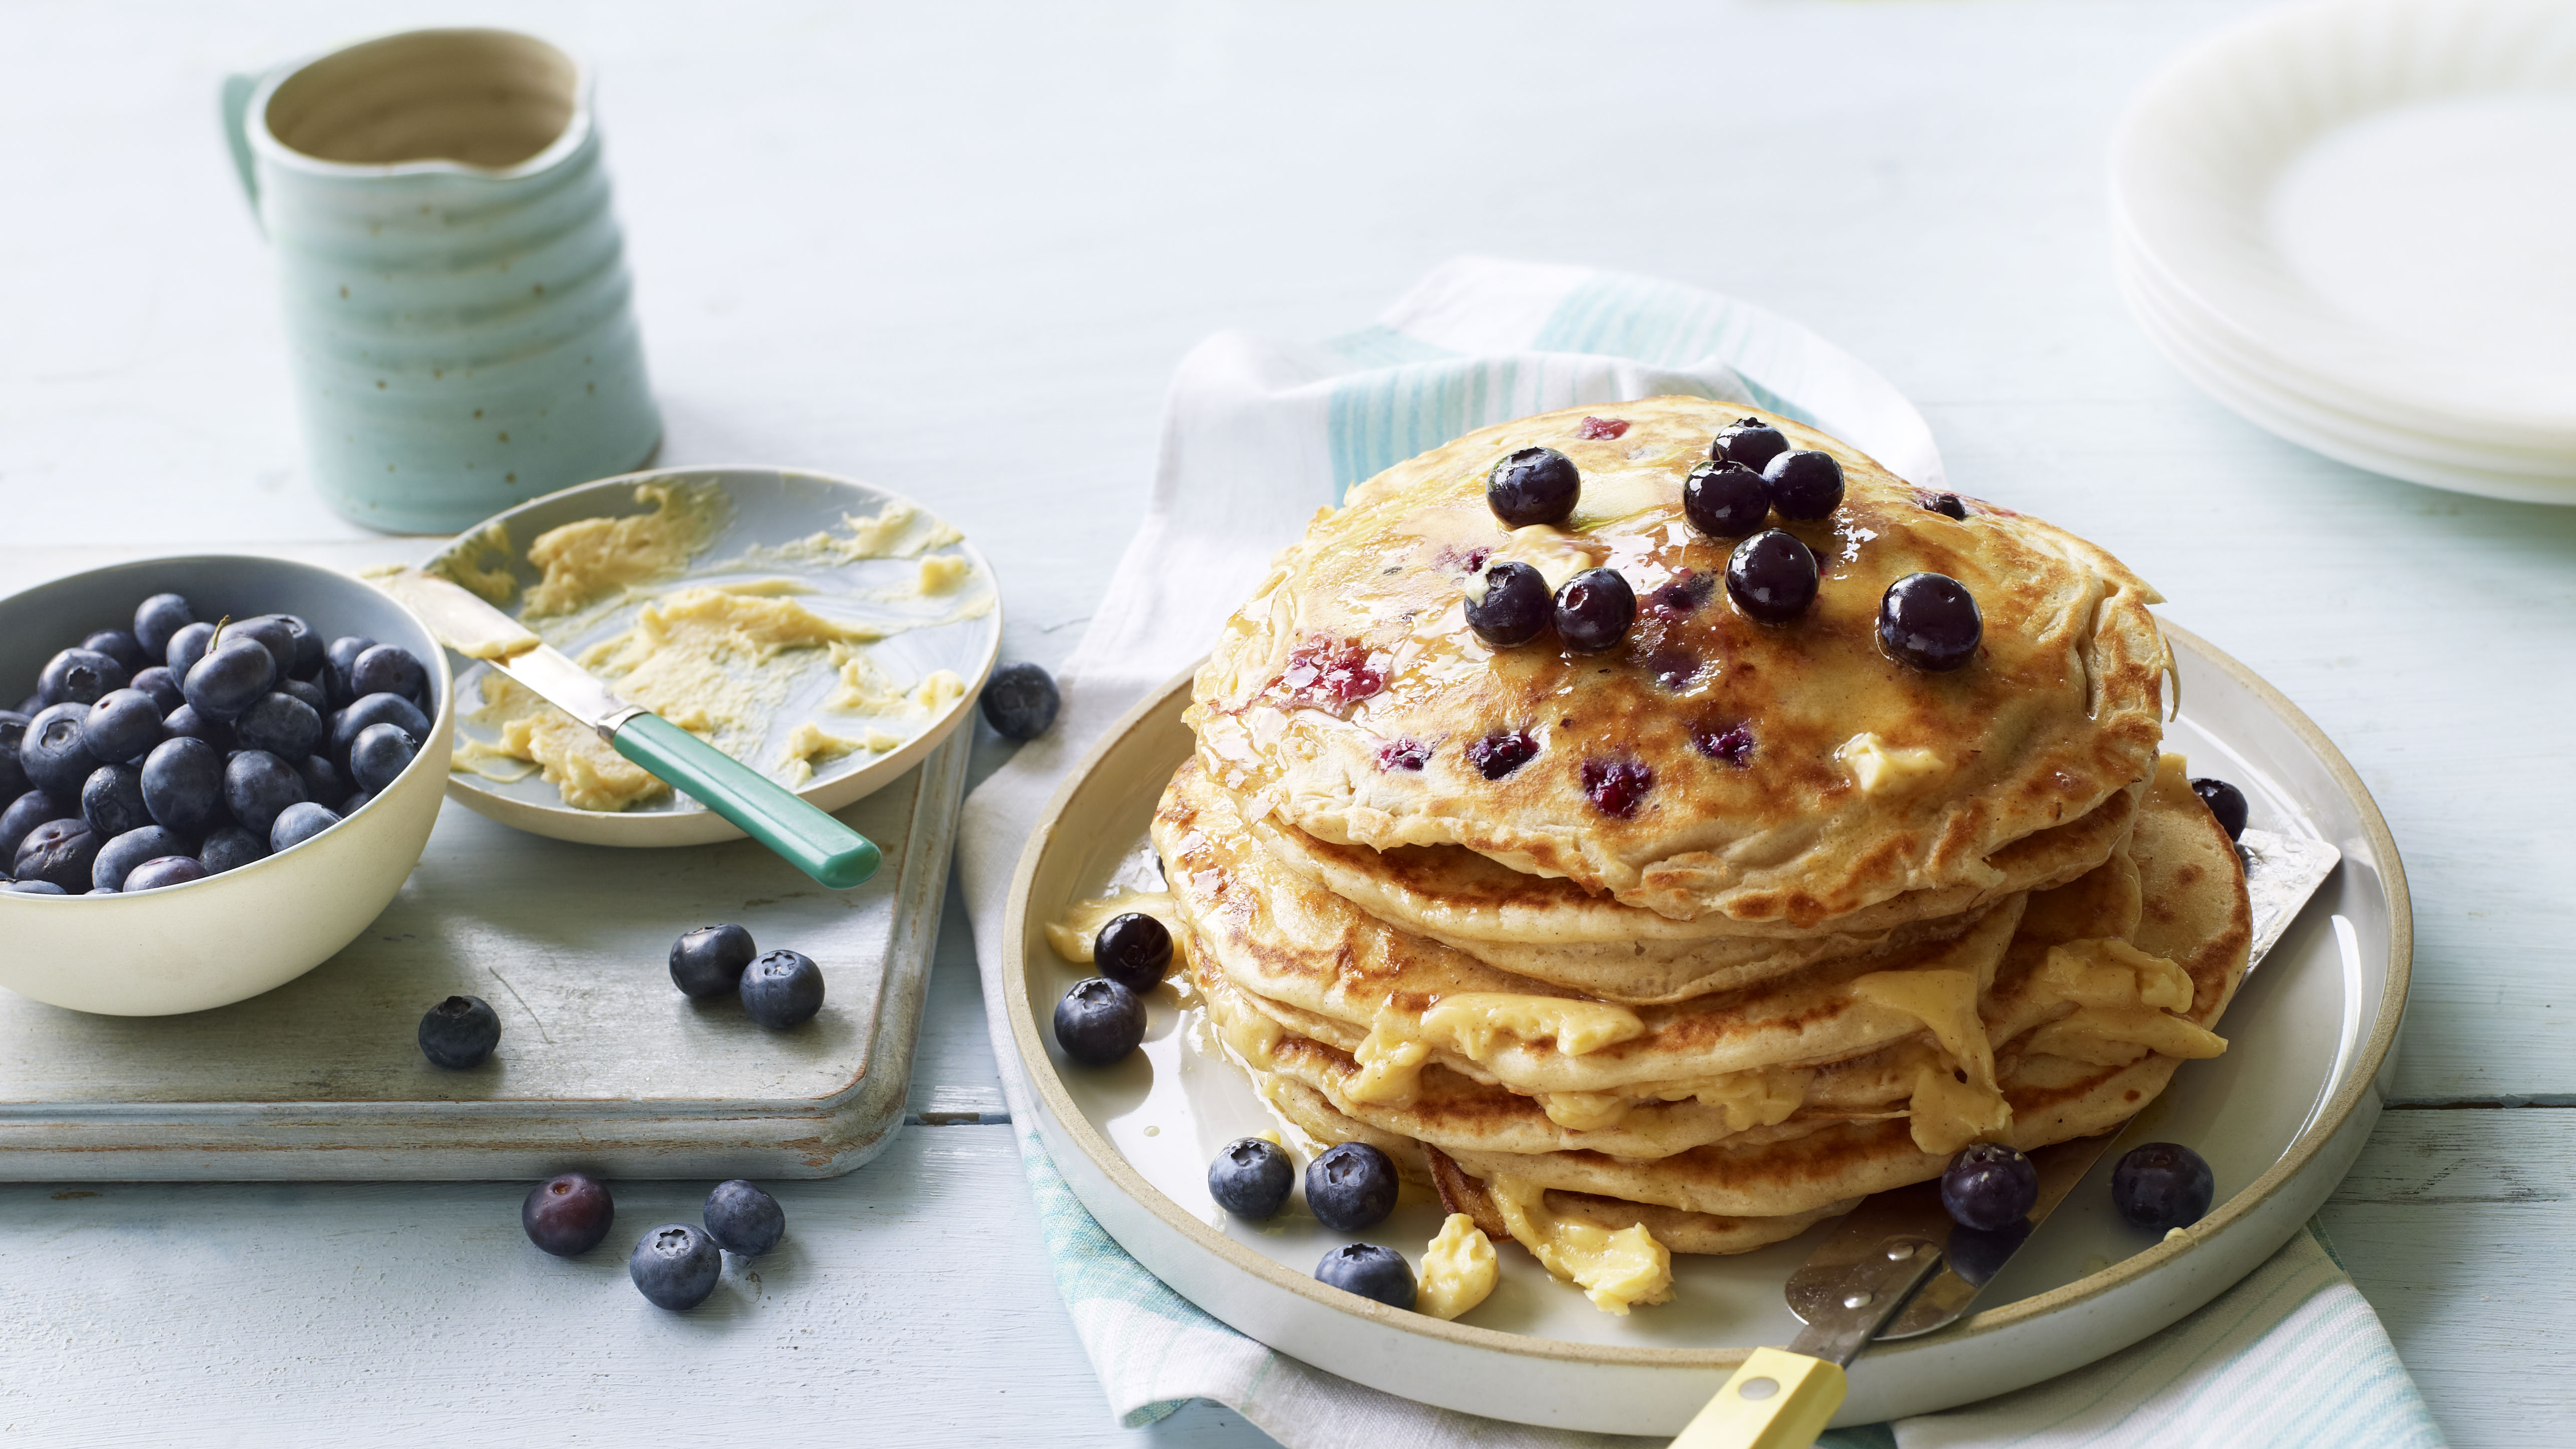 American style pancakes with blueberries recipe bbc food forumfinder Gallery